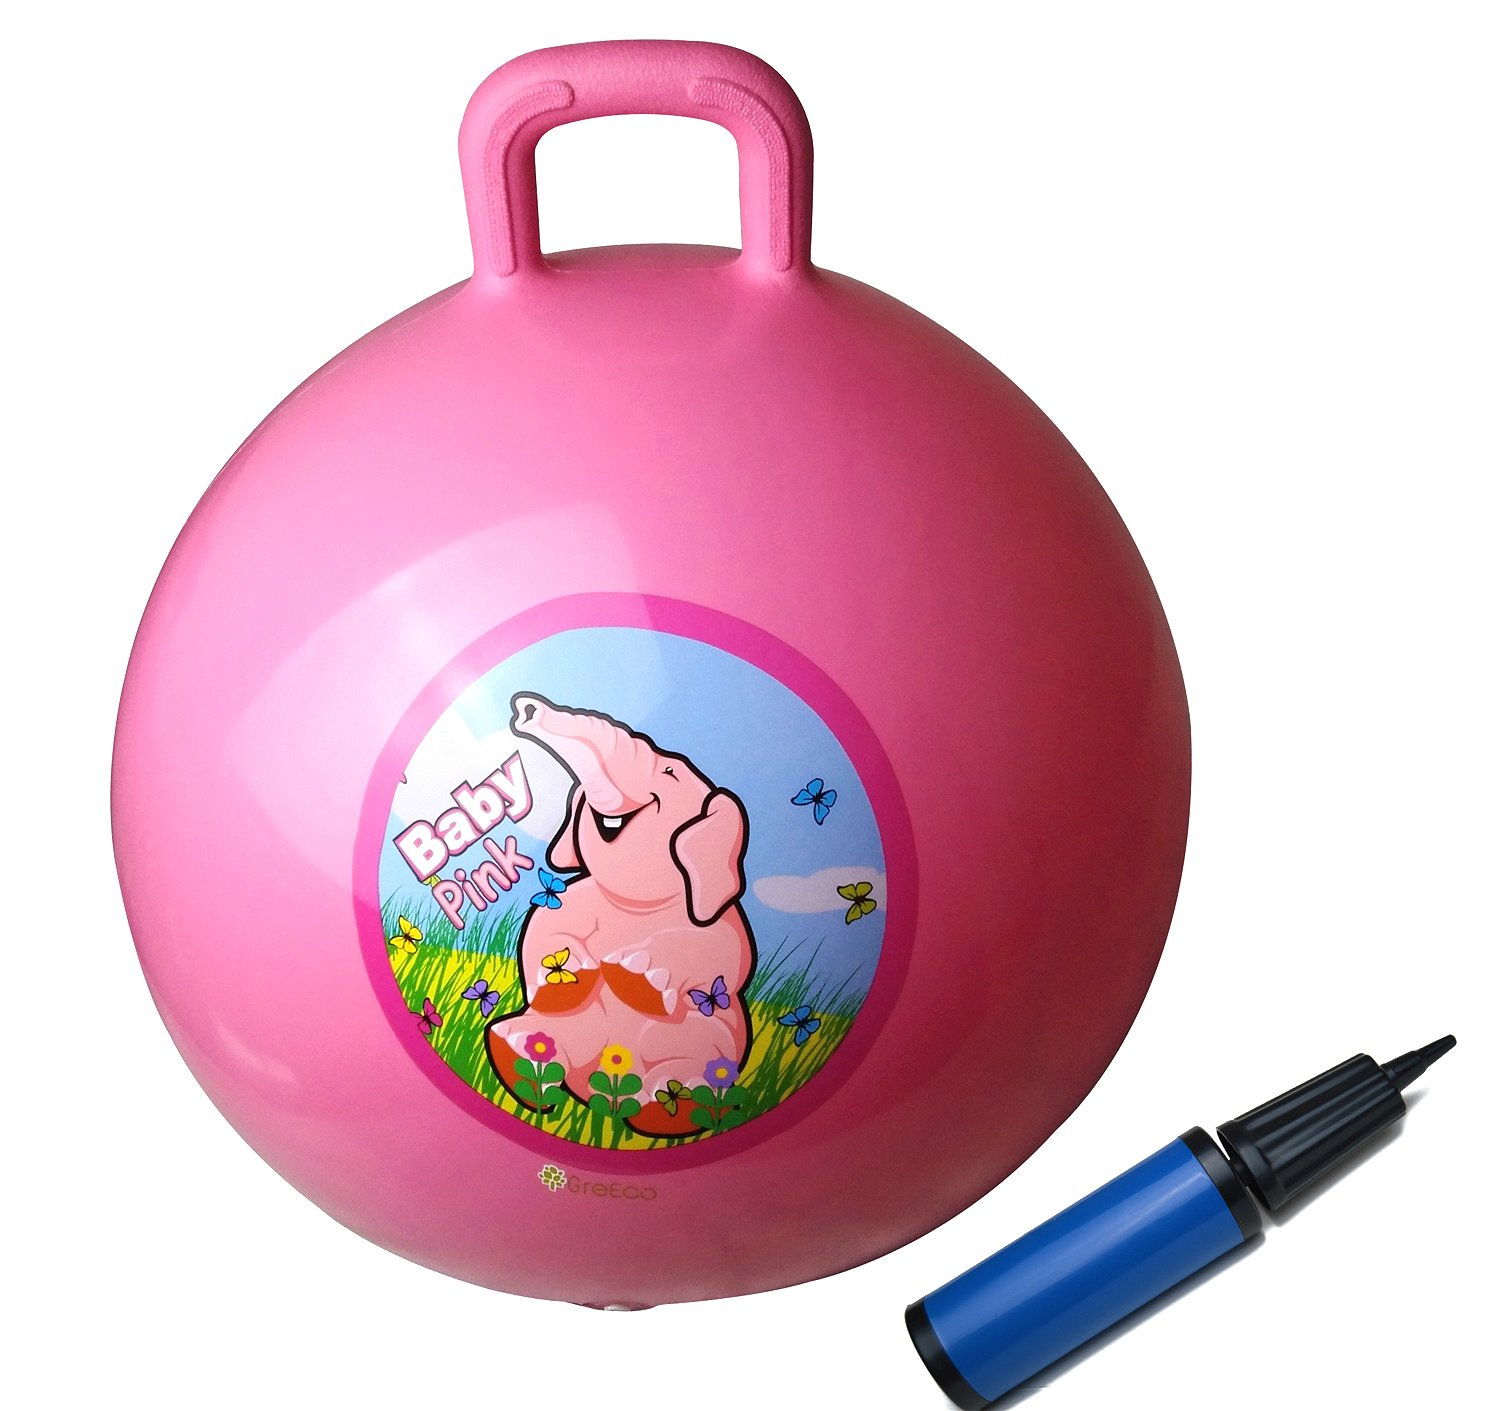 Kangaroo Bouncer Diameter 45cm//18 Inch for Ages 3-6 GreEco Space Hopper Ball Including Free Pump Pink Hippity Hop Bouncing Toy